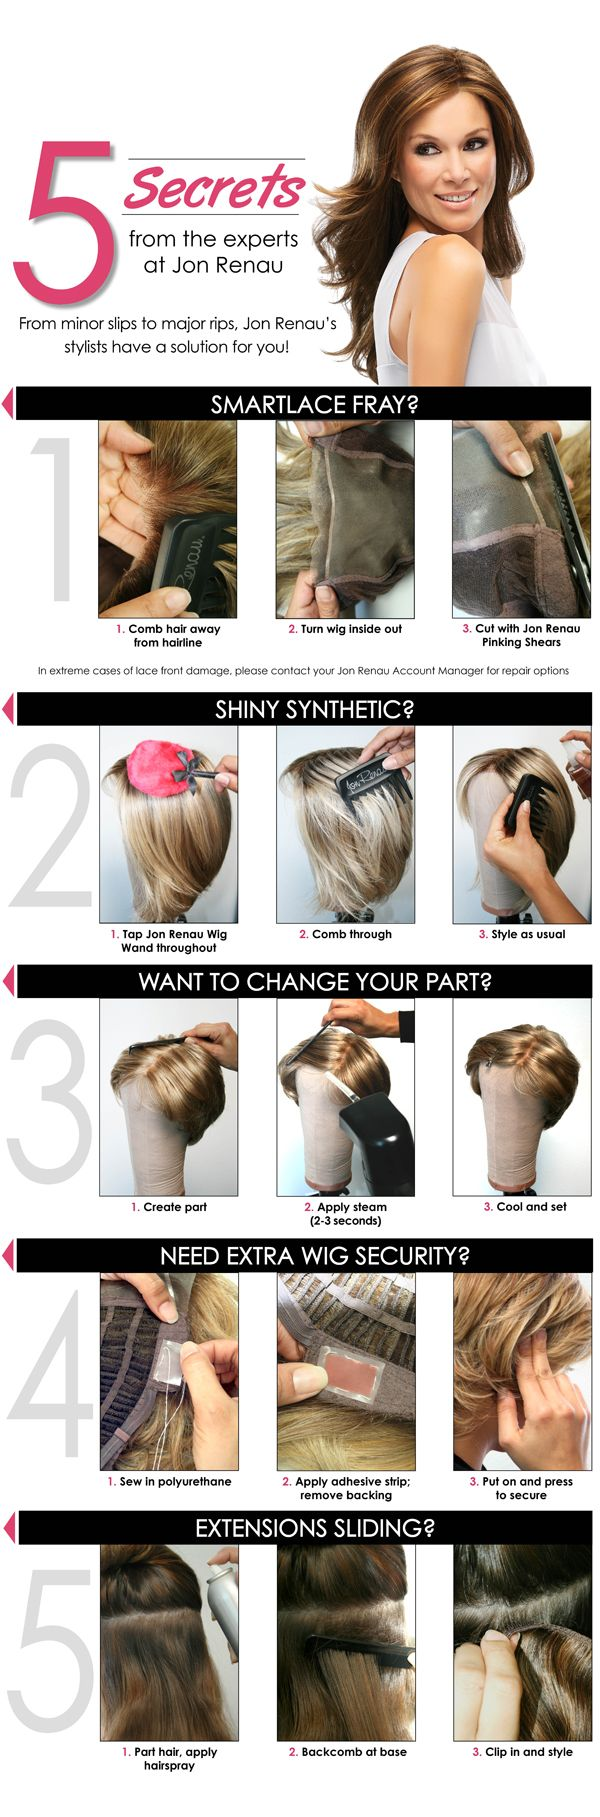 How to care a smart lace fray, reduce the shine on a synthetic hair wig, change the part of a synthetic hair wig, secure your wig to your head with adhesives, and prevent extensions from sliding.